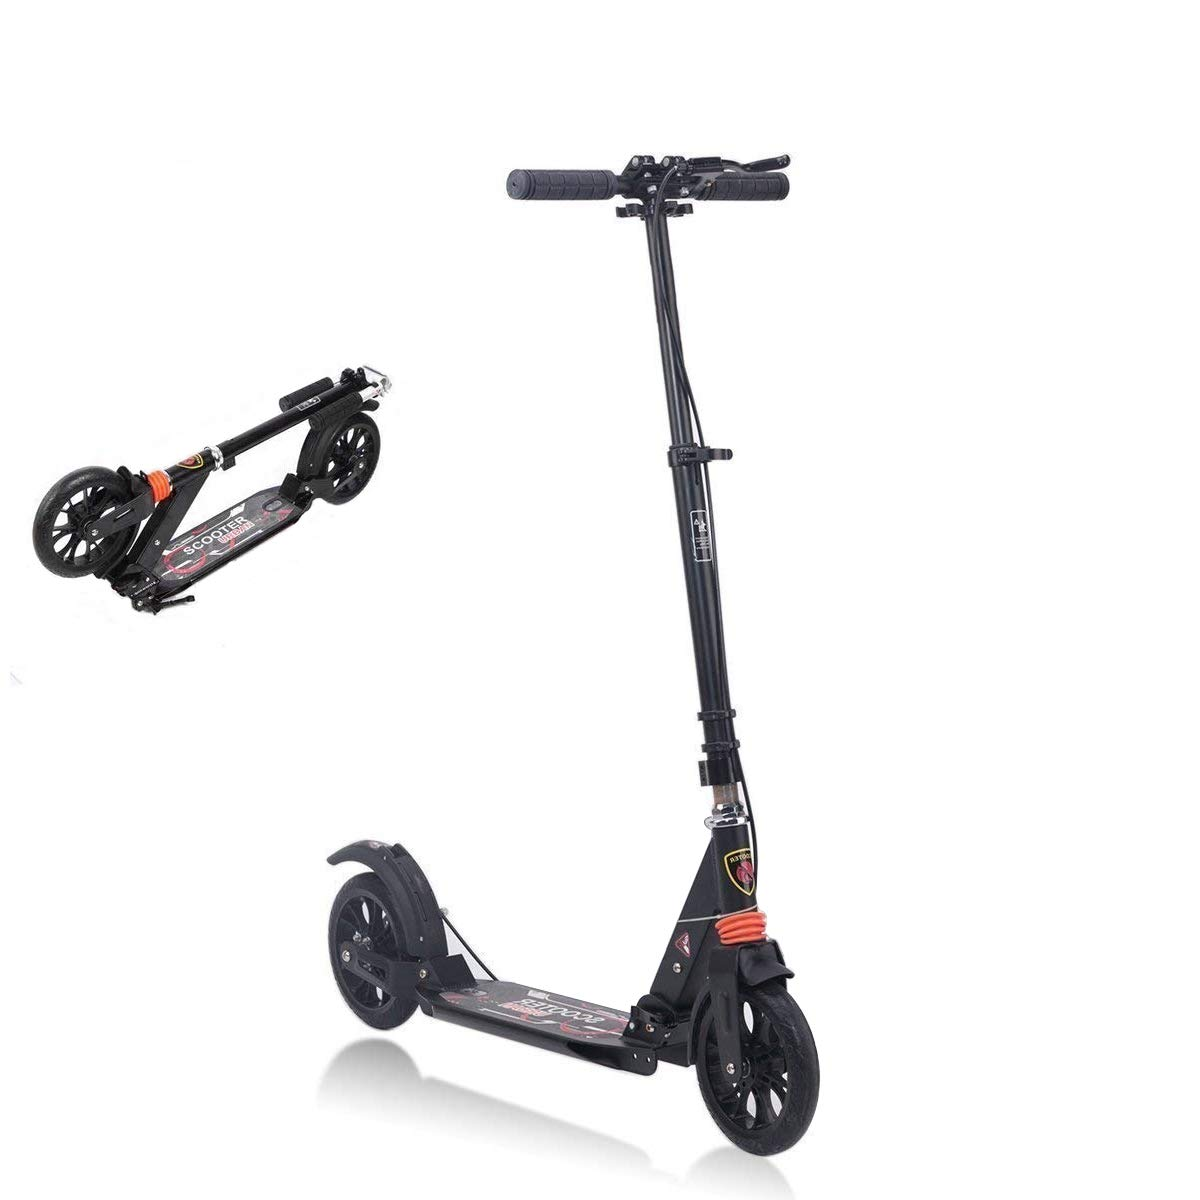 MONODEAL Adjustable Kick Scooter for Adults Teens, 2 Big Wheels with Aluminum Alloy Commuter Scooter for Kids 8 Years and up, Foldable Scooter with Dual Suspension/Rear Fender Brake by MONODEAL